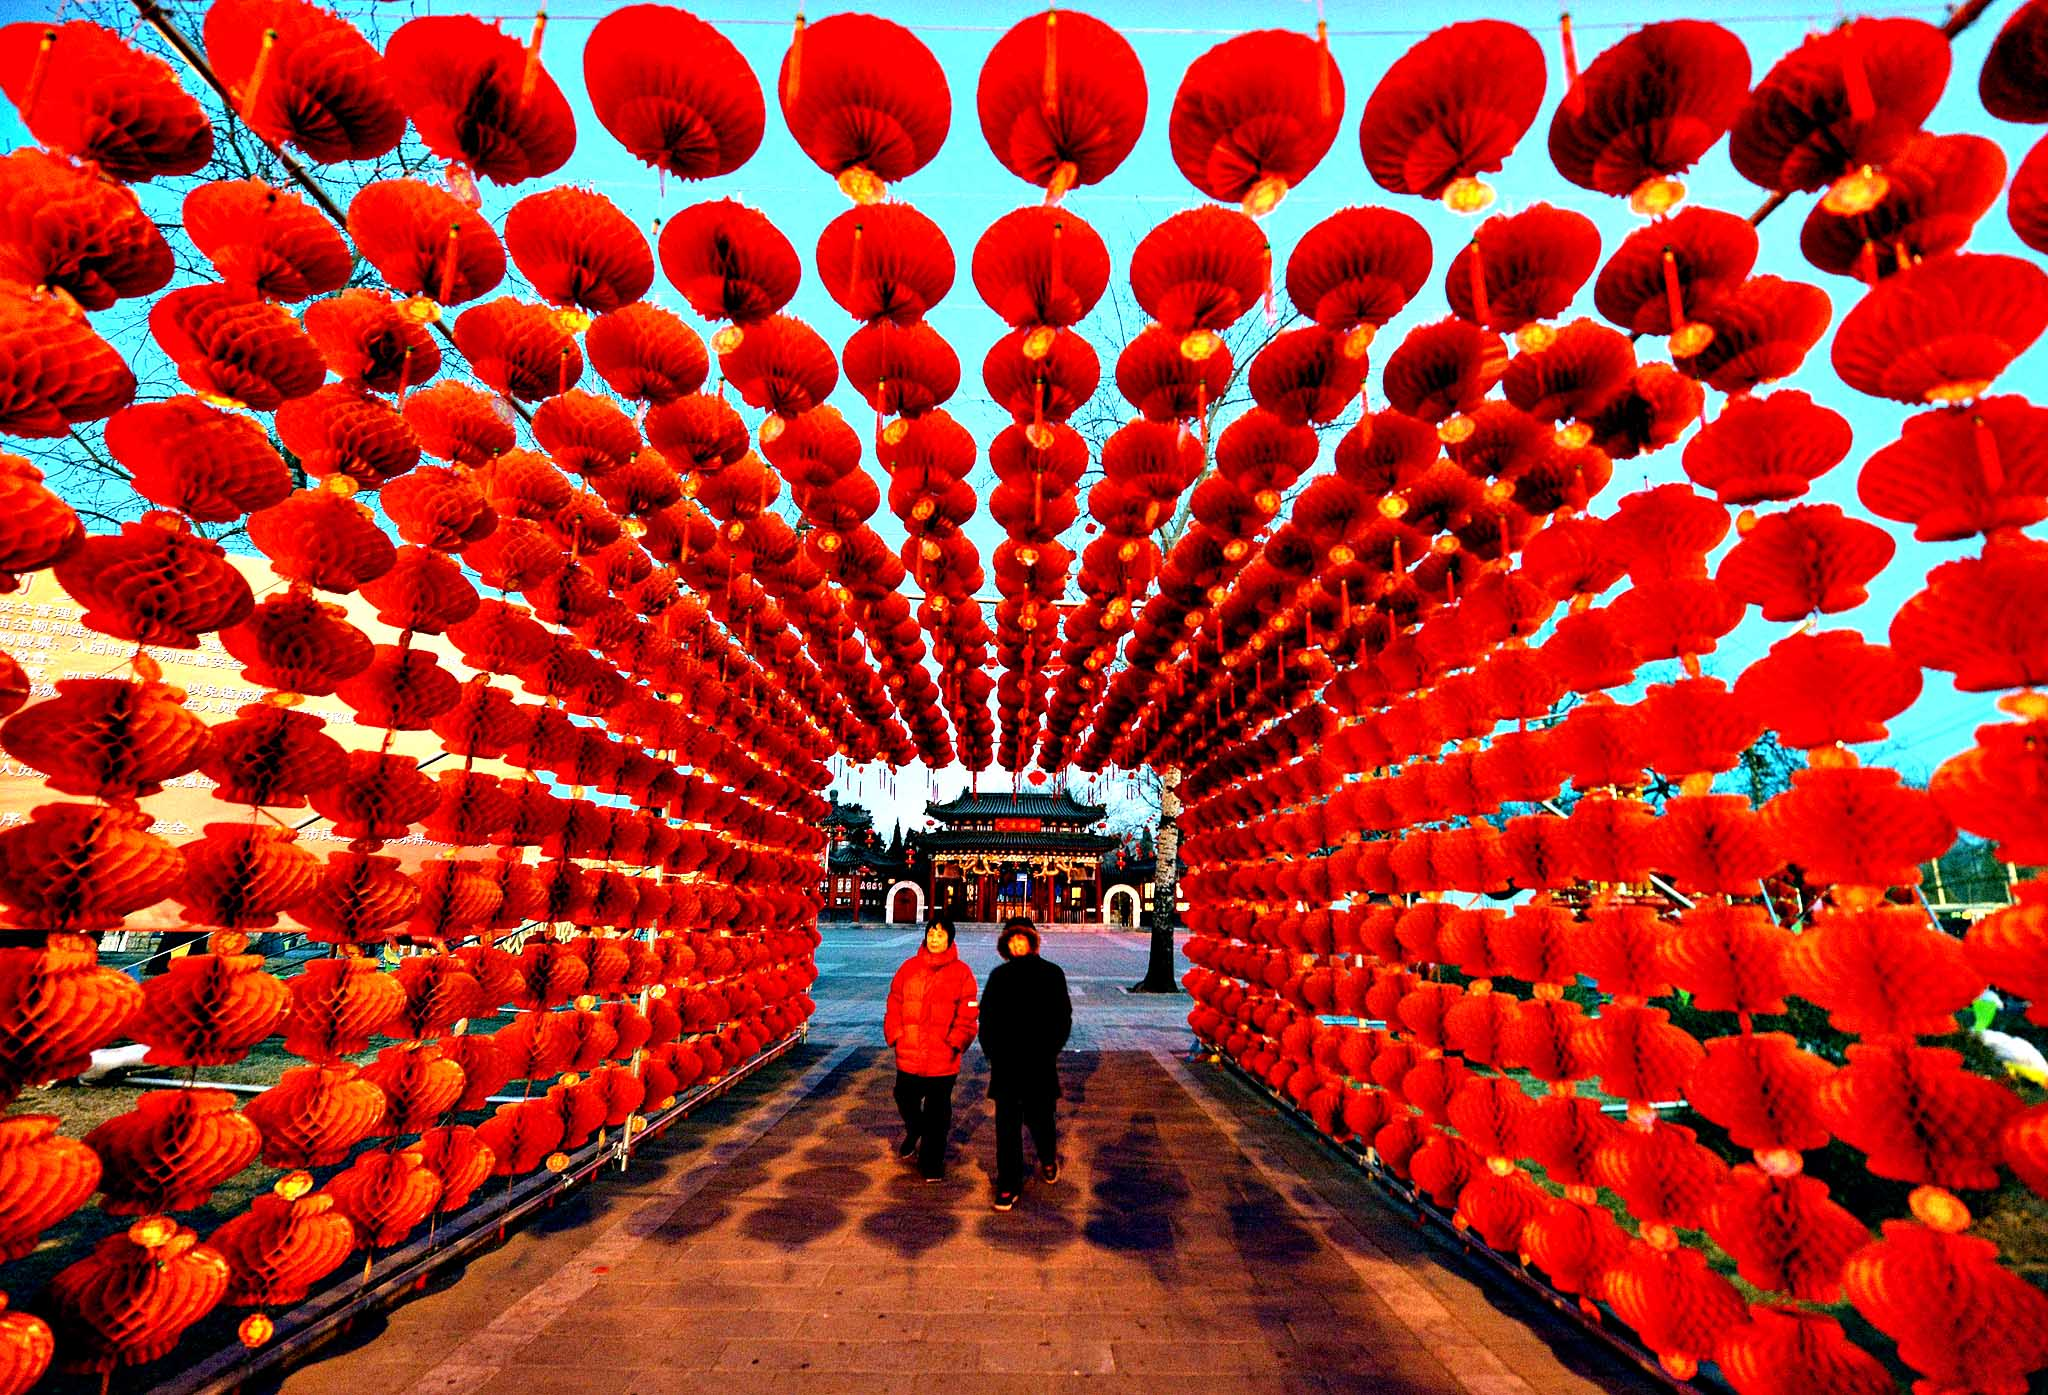 A couple walk beneath a display of lanterns for the Lunar New Year as China prepares for the Year of the Horse in Beijing on January 28, 2014.  China is preparing to welcome the Lunar New Year of the Horse which falls on January 31 and will see about 3.62 billion trips made by Chinese travelers during the 40-day Spring Festival travel period.